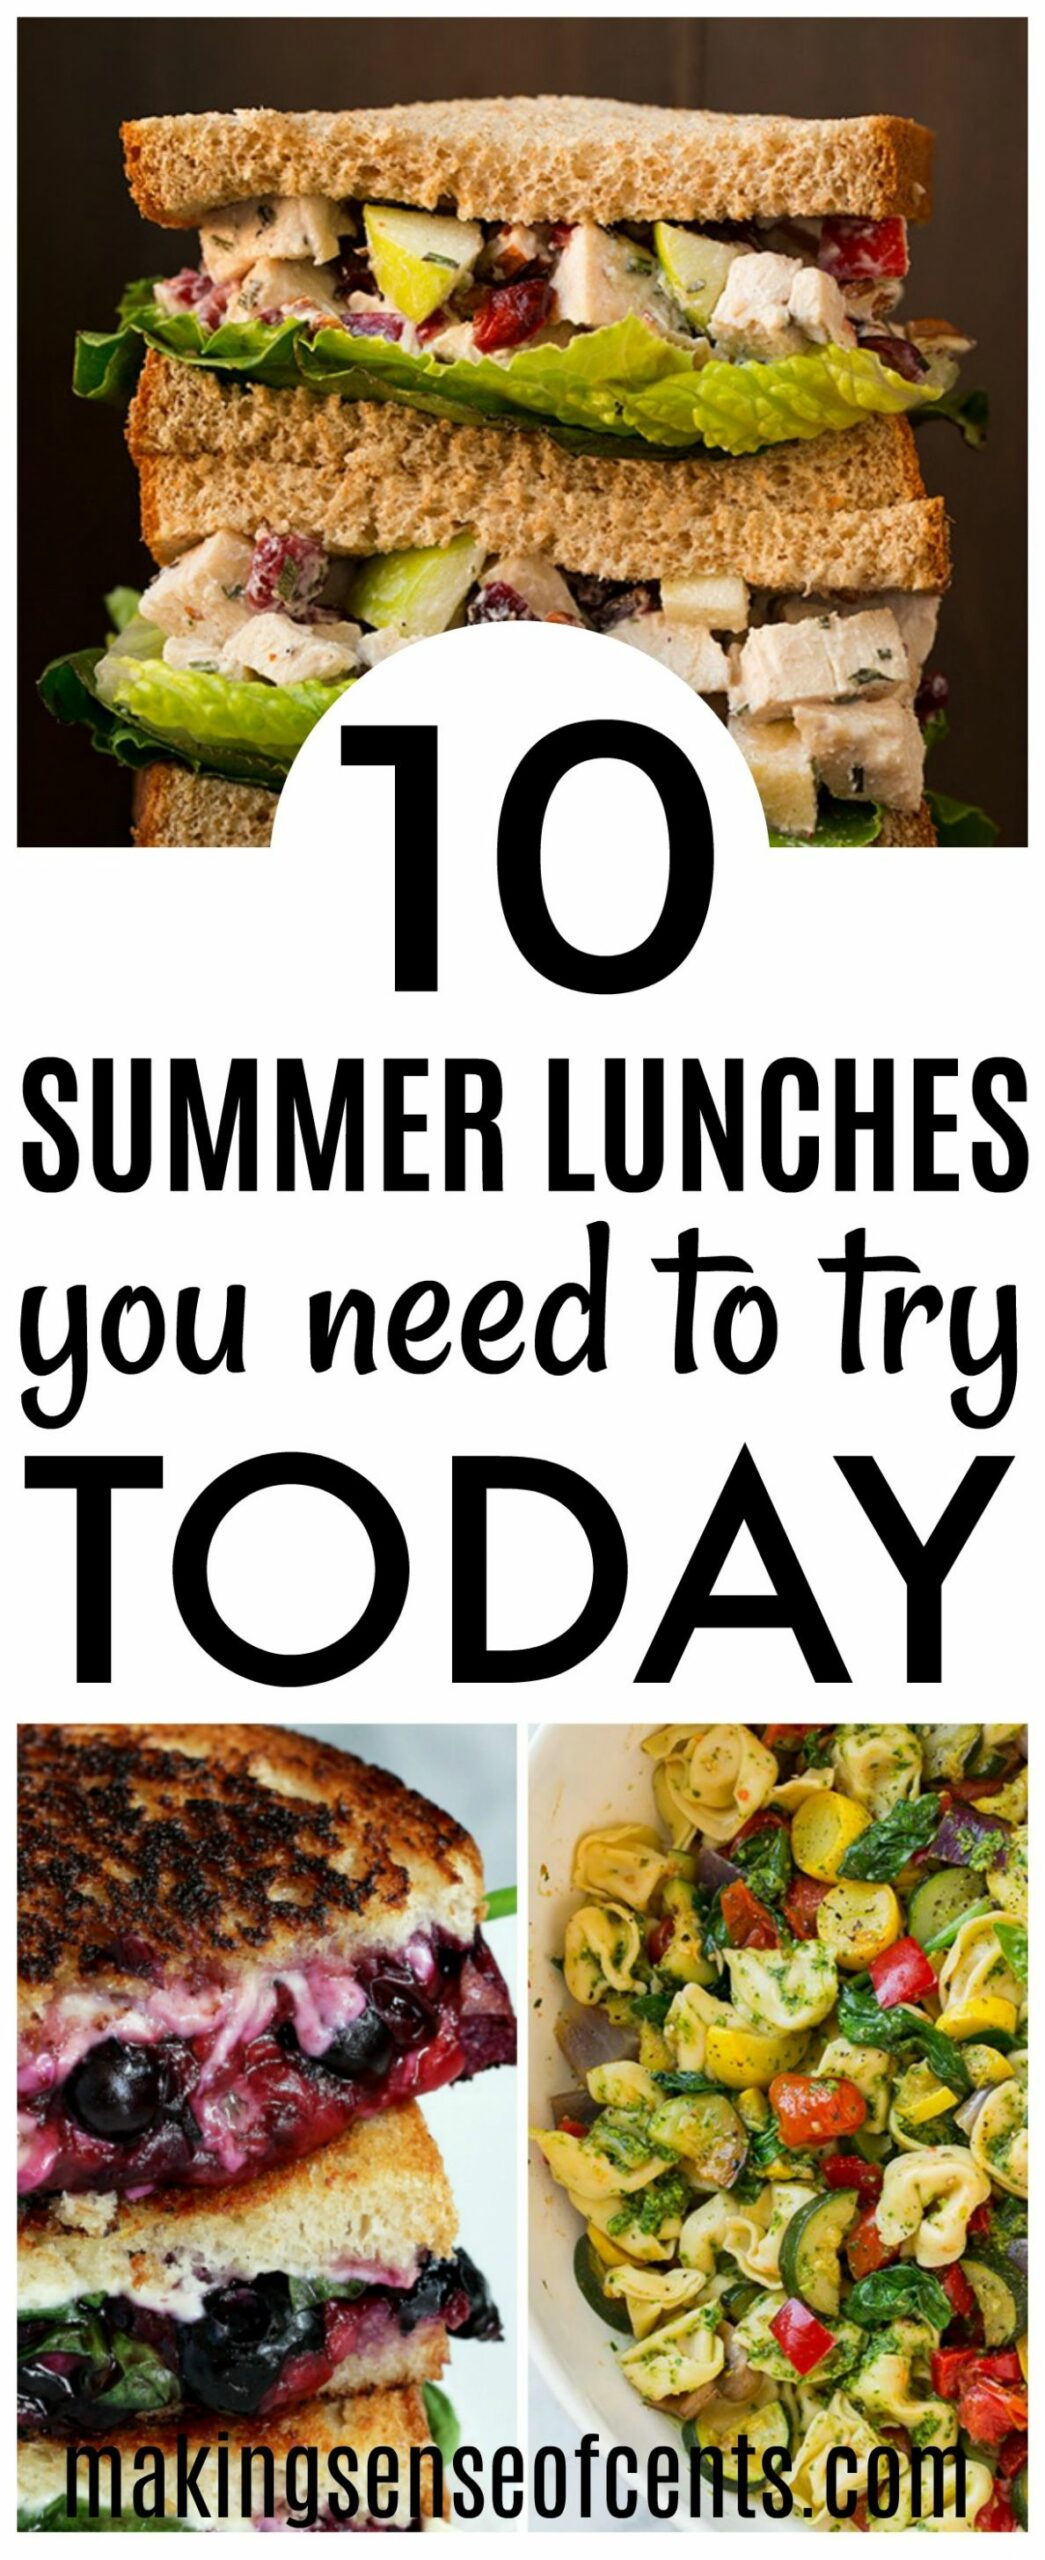 9 Delicious Summer Lunch Ideas - Summer Meals You Need To Make! - Recipes Summer Buffet Lunch